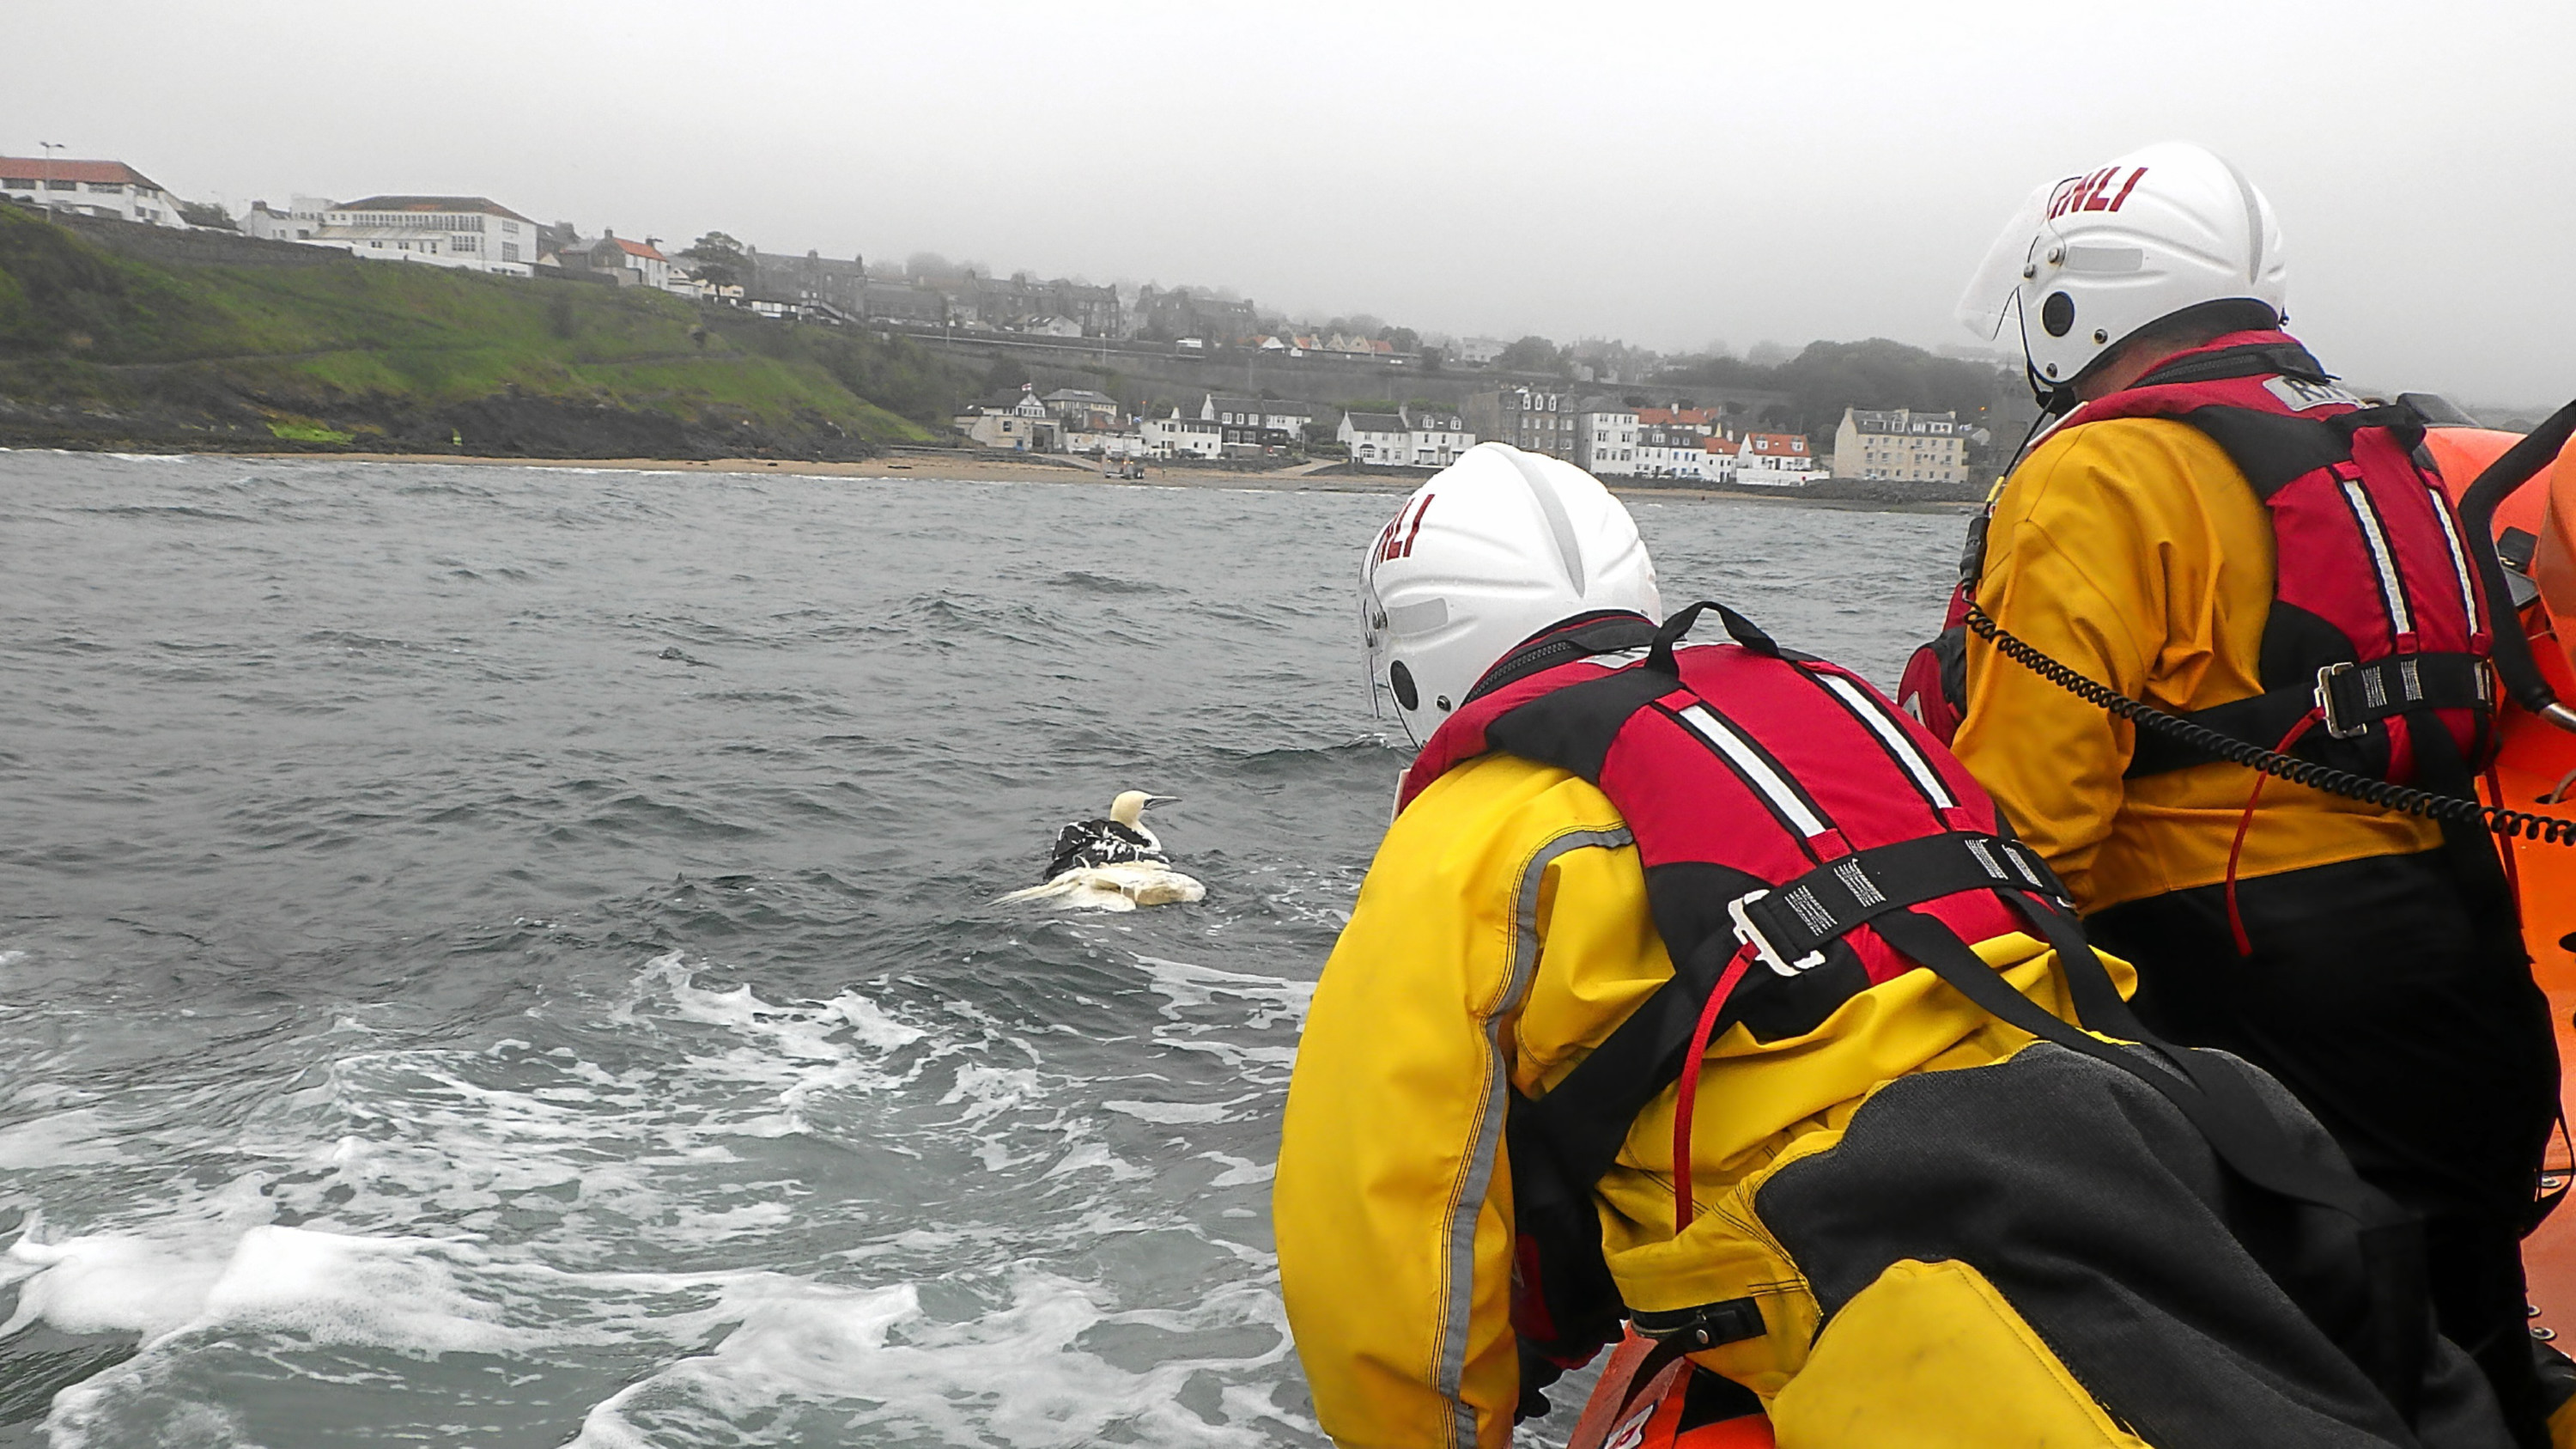 Members of the Kinghorn RNLI team during the rescue operation.